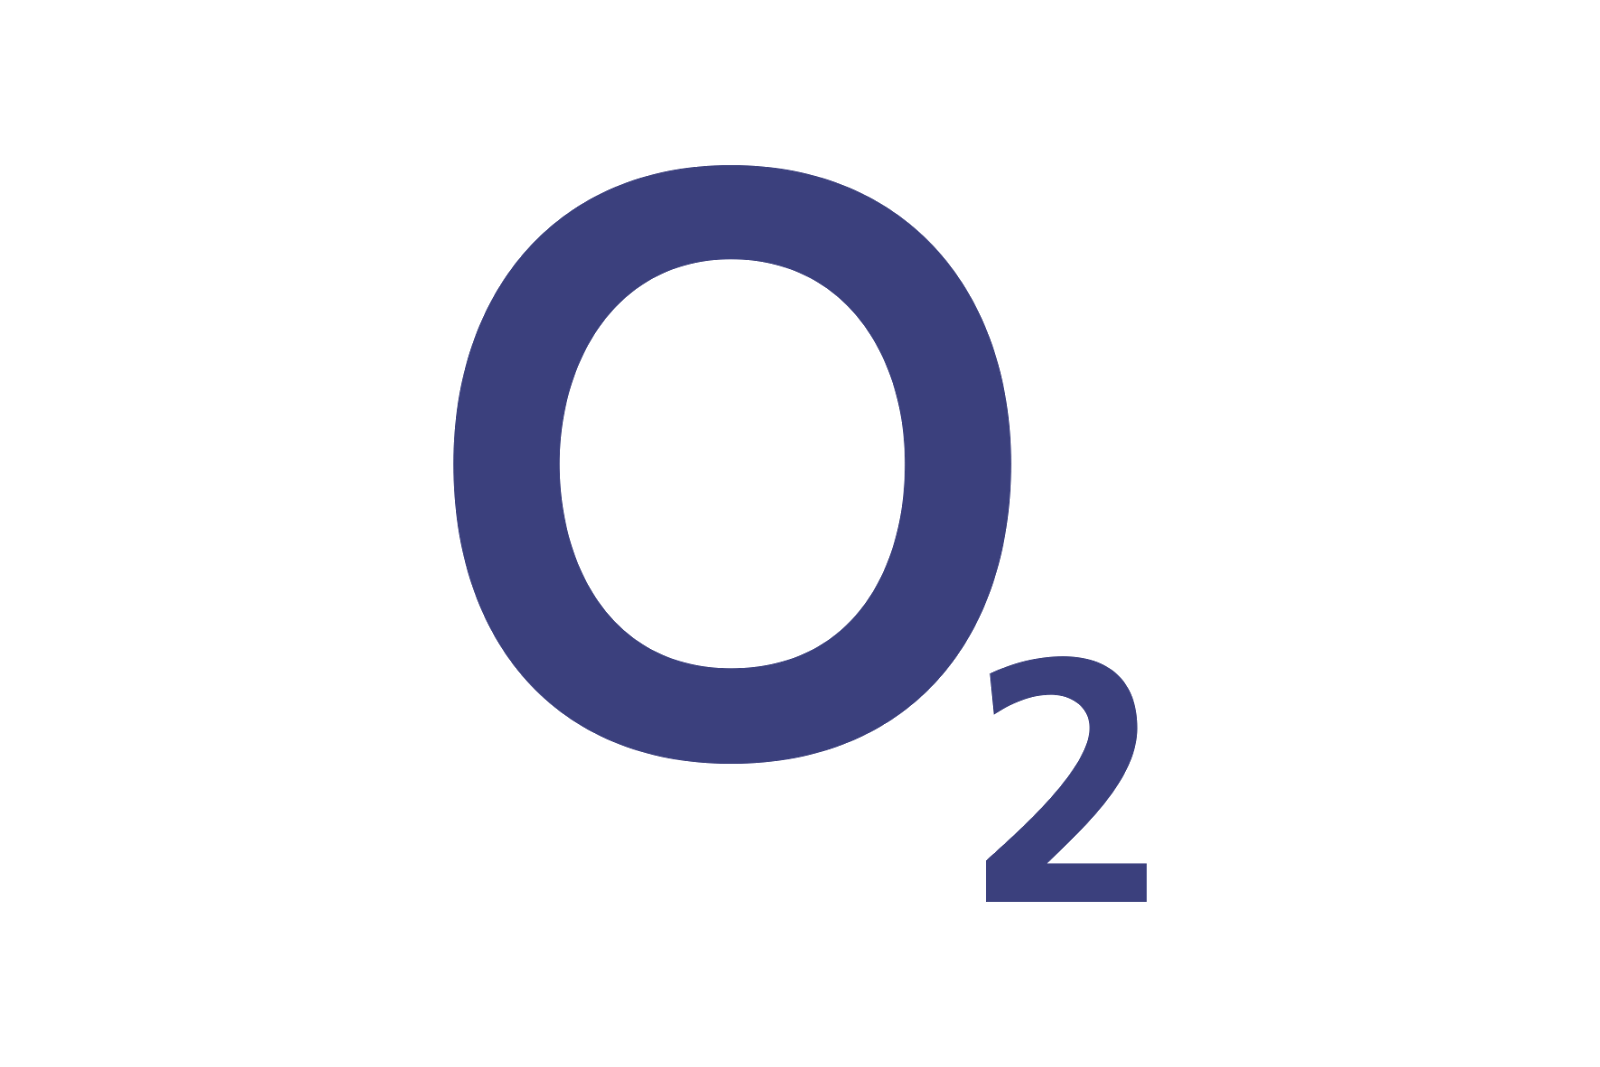 O2 logo, logotype. All logos, emblems, brands pictures gallery.